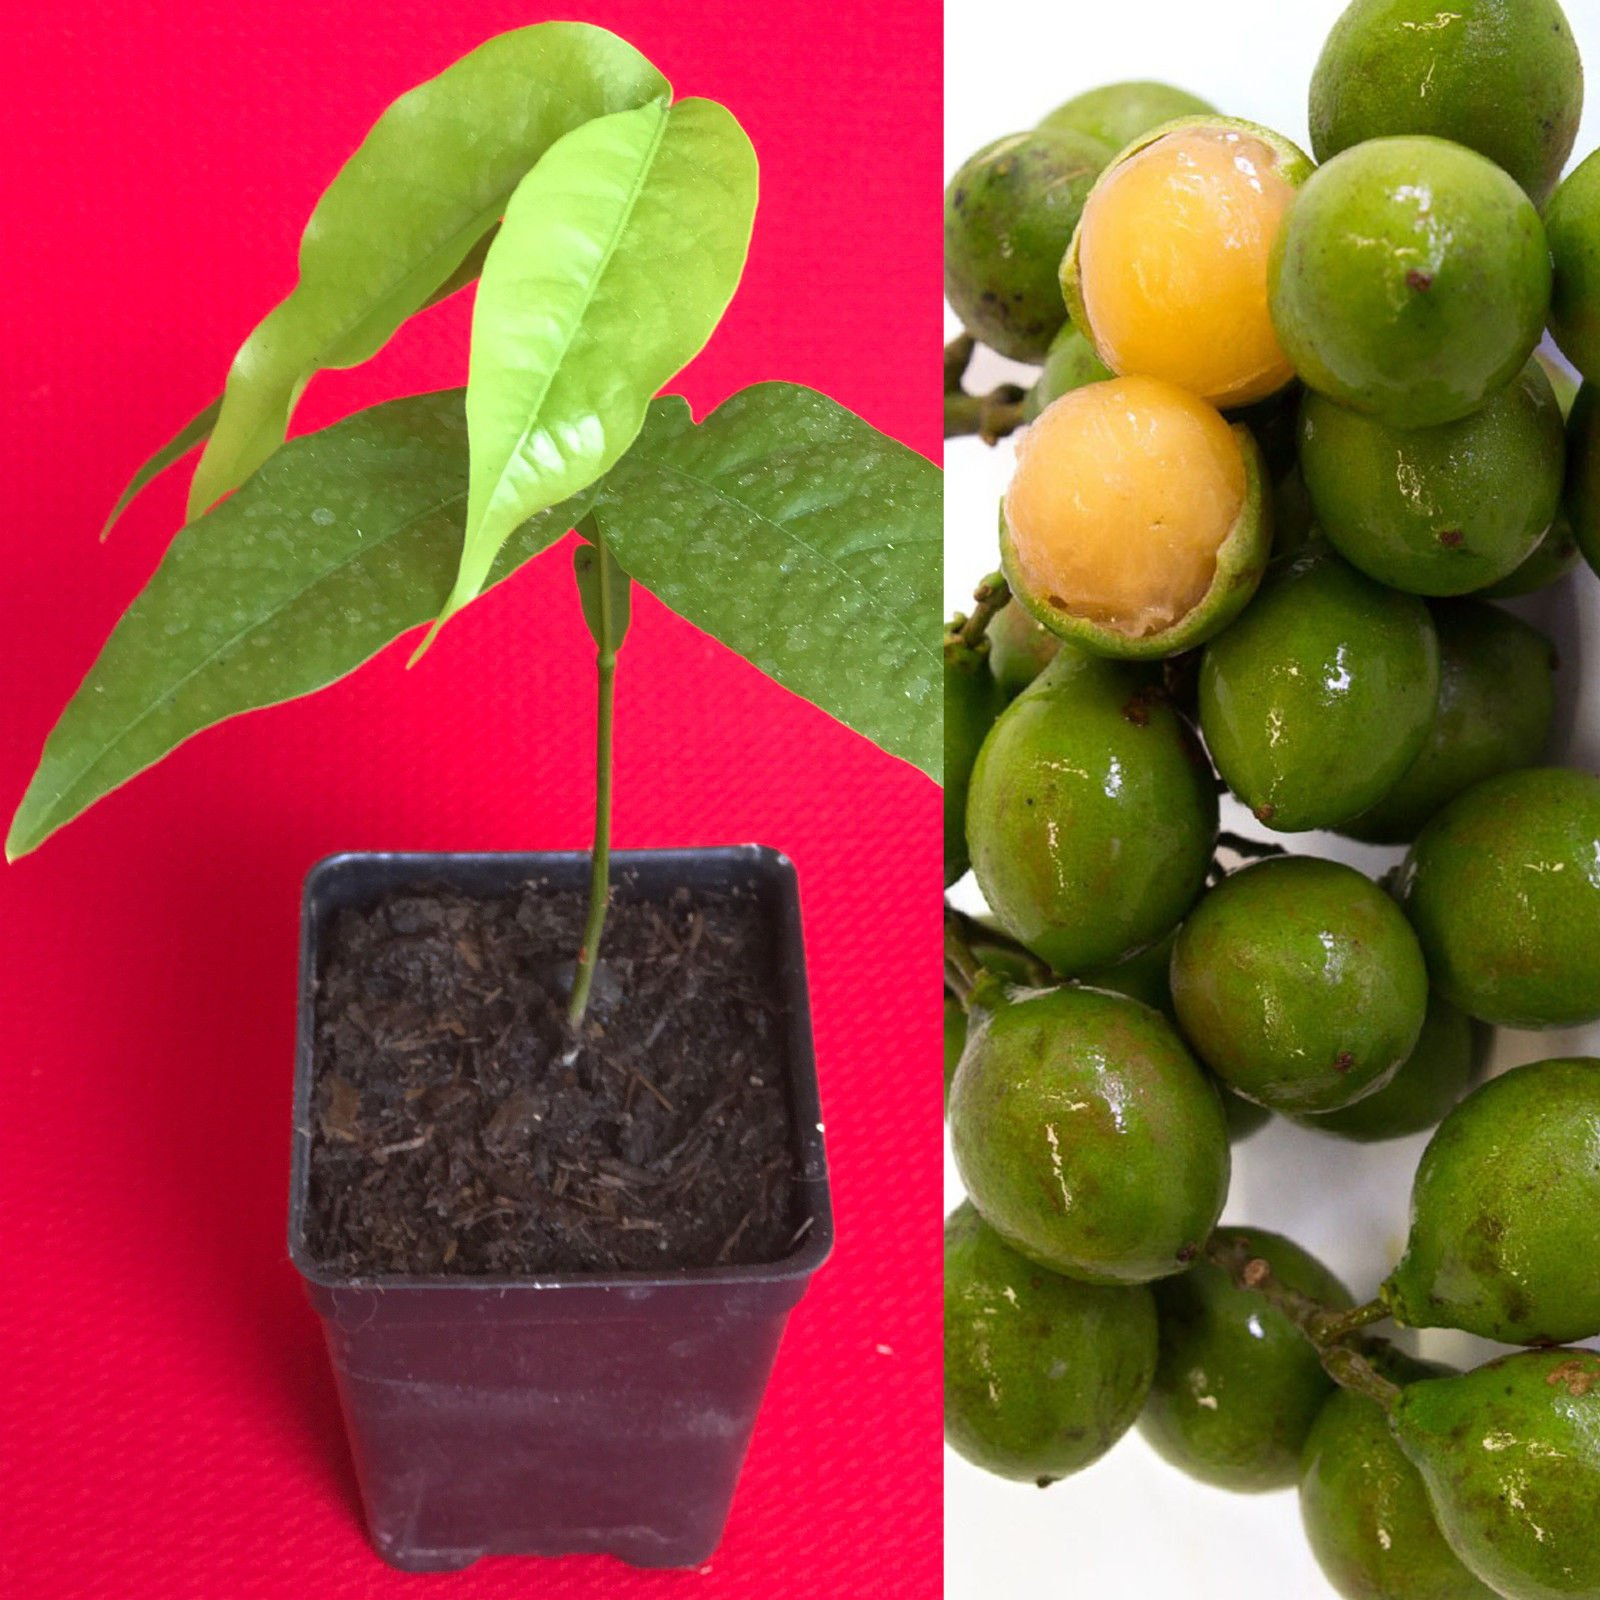 Spanish Lime Genip Guinep Ginepa Limoncillo Mamoncillo Fruit Seedling Starter Pl by genuineprotection